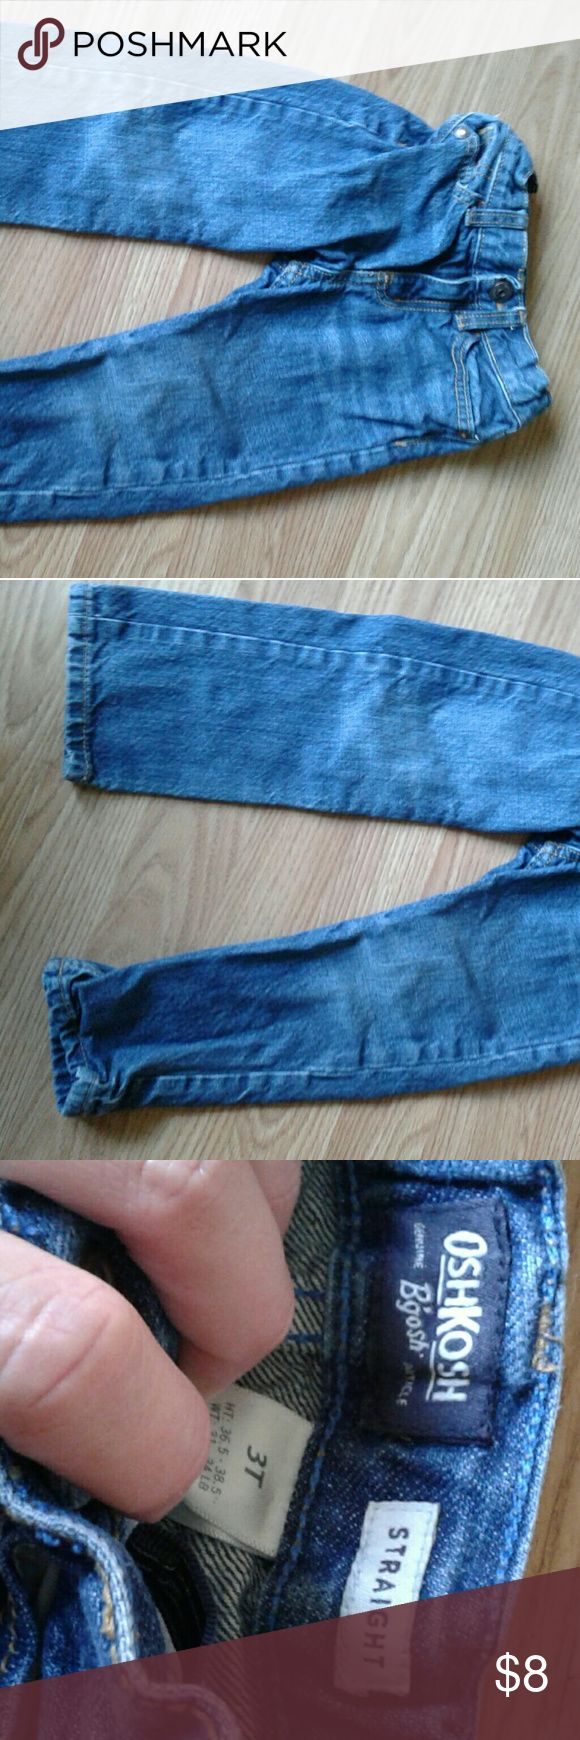 Boys straight cut jeans These jeans were only worn about 2 times. I forgot about them in his dresser. Great shape. Osh Kosh Bottoms Jeans